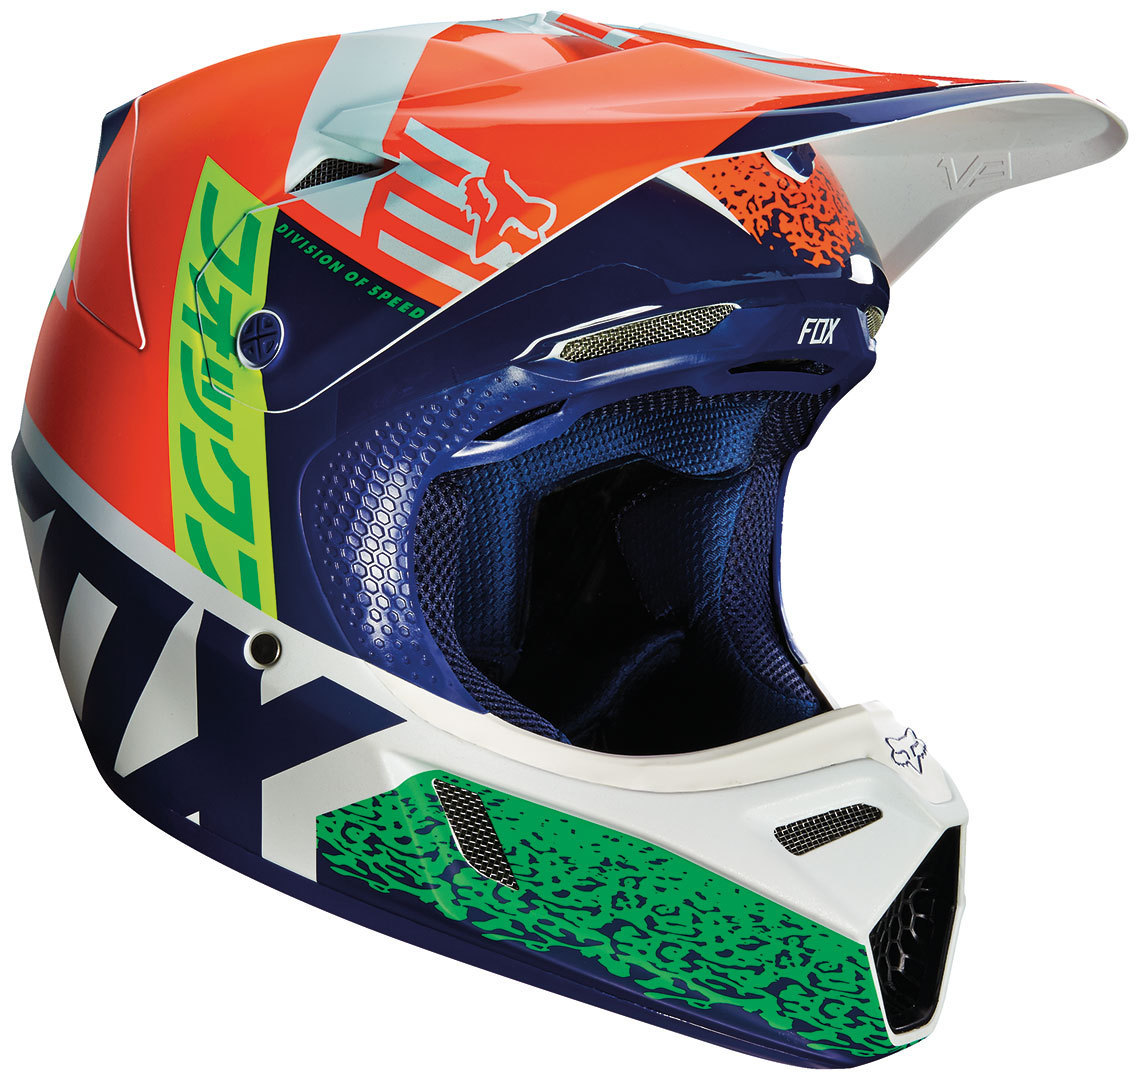 FOX V3 Divizion Motocross Helm, blau-orange, Größe S, blau-orange, Größe S